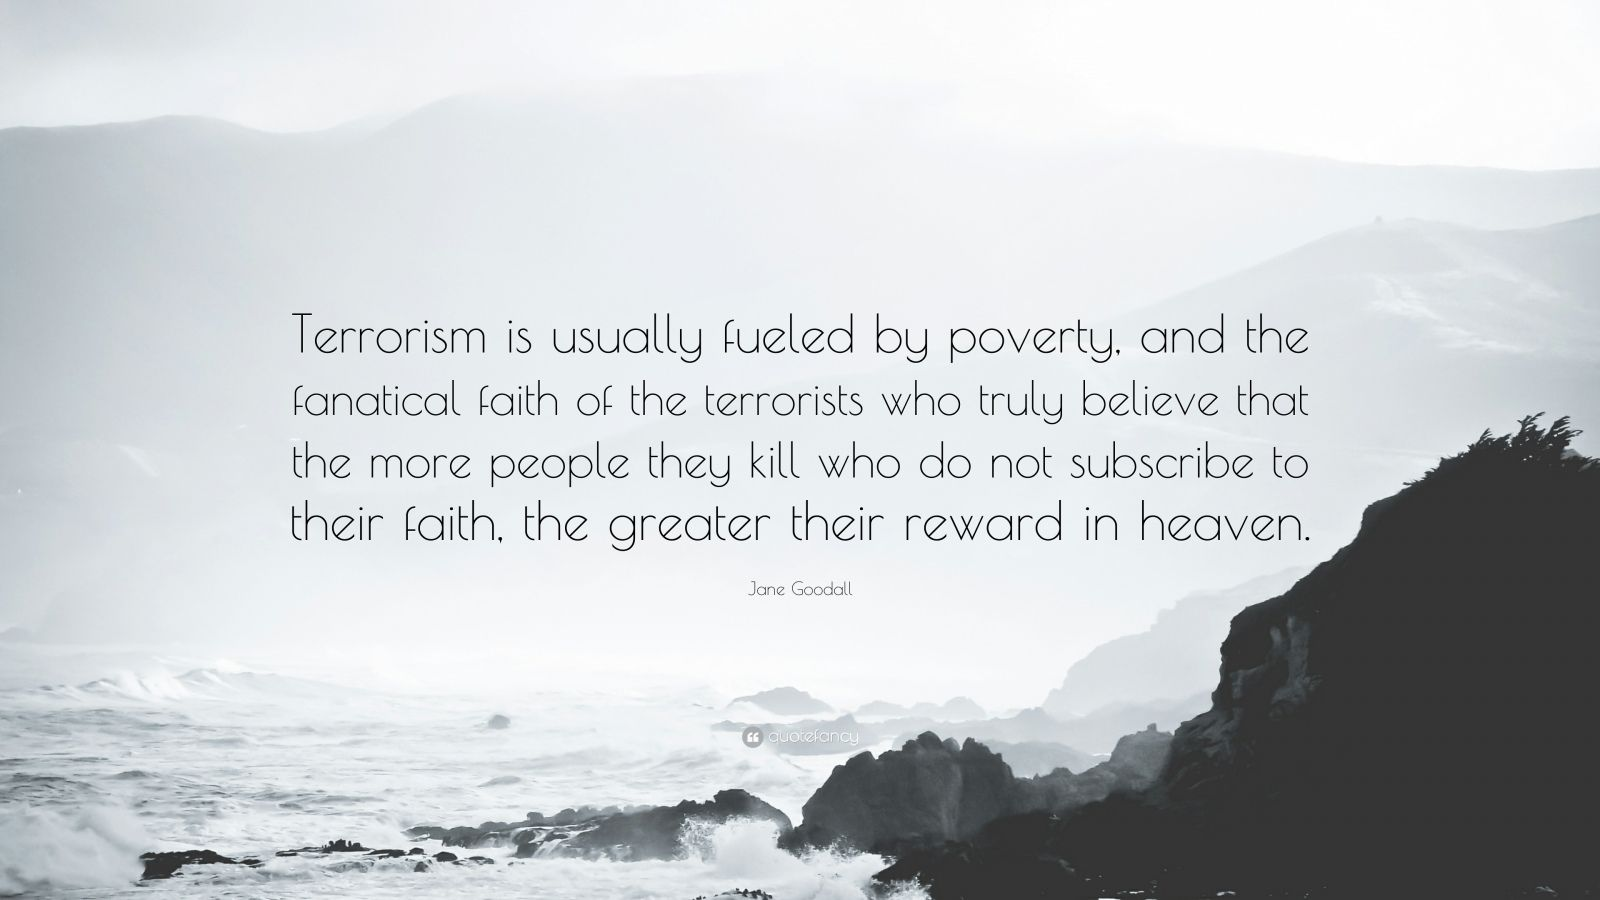 """Jane Goodall Quote: """"Terrorism is usually fueled by poverty, and the fanatical faith of the terrorists who truly believe that the more people they kill who do not subscribe to their faith, the greater their reward in heaven."""""""